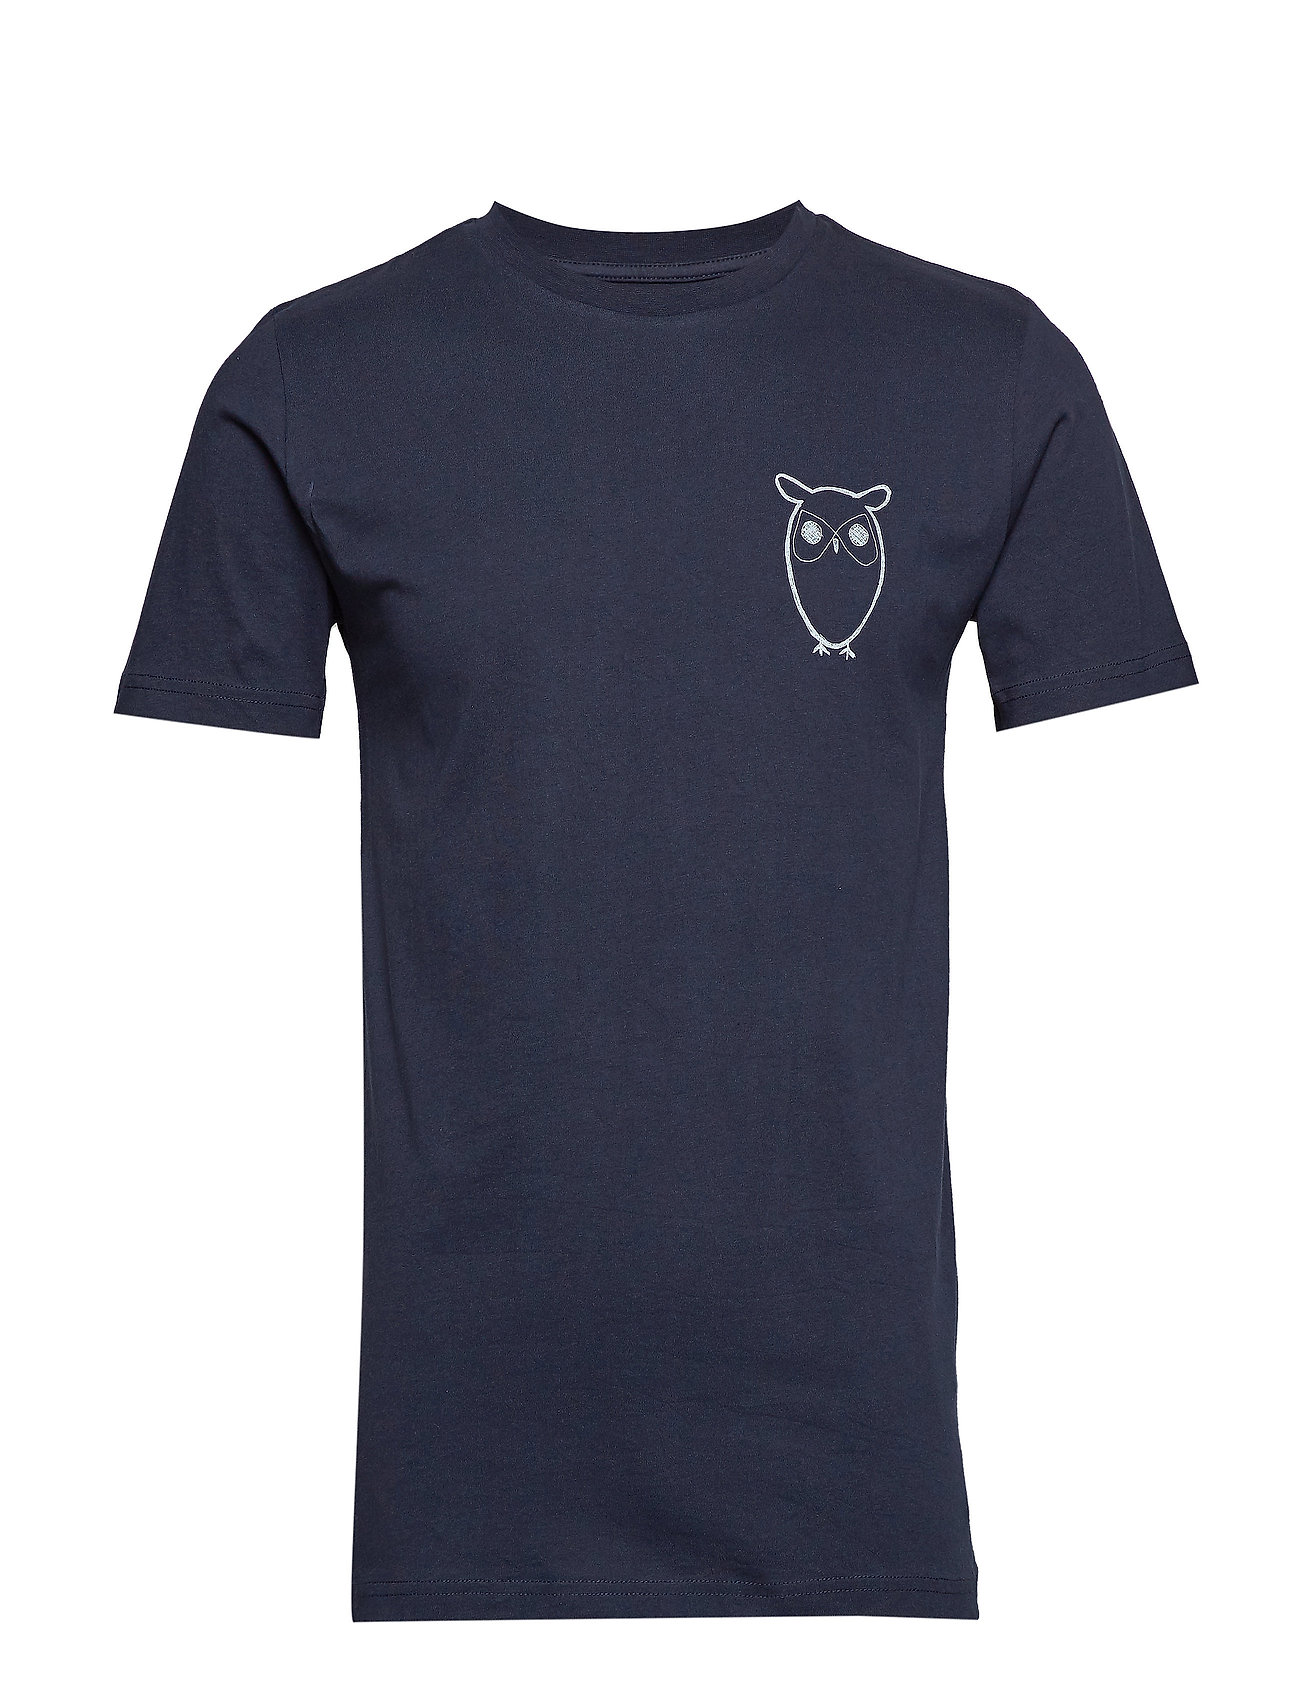 Image of T-Shirt With Owl Chest Logo - Gots T-shirt Blå Knowledge Cotton Apparel (3169766235)